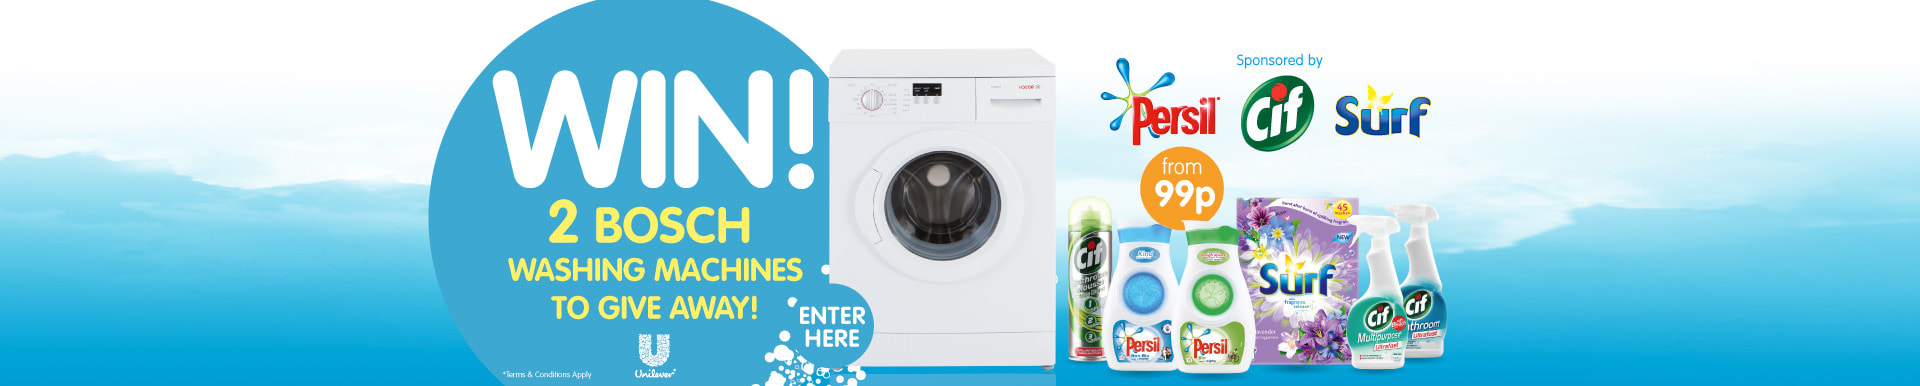 WIN! 2 Bosch washing machines to giveaway. Sponsored by Persil, Cif and Surf.